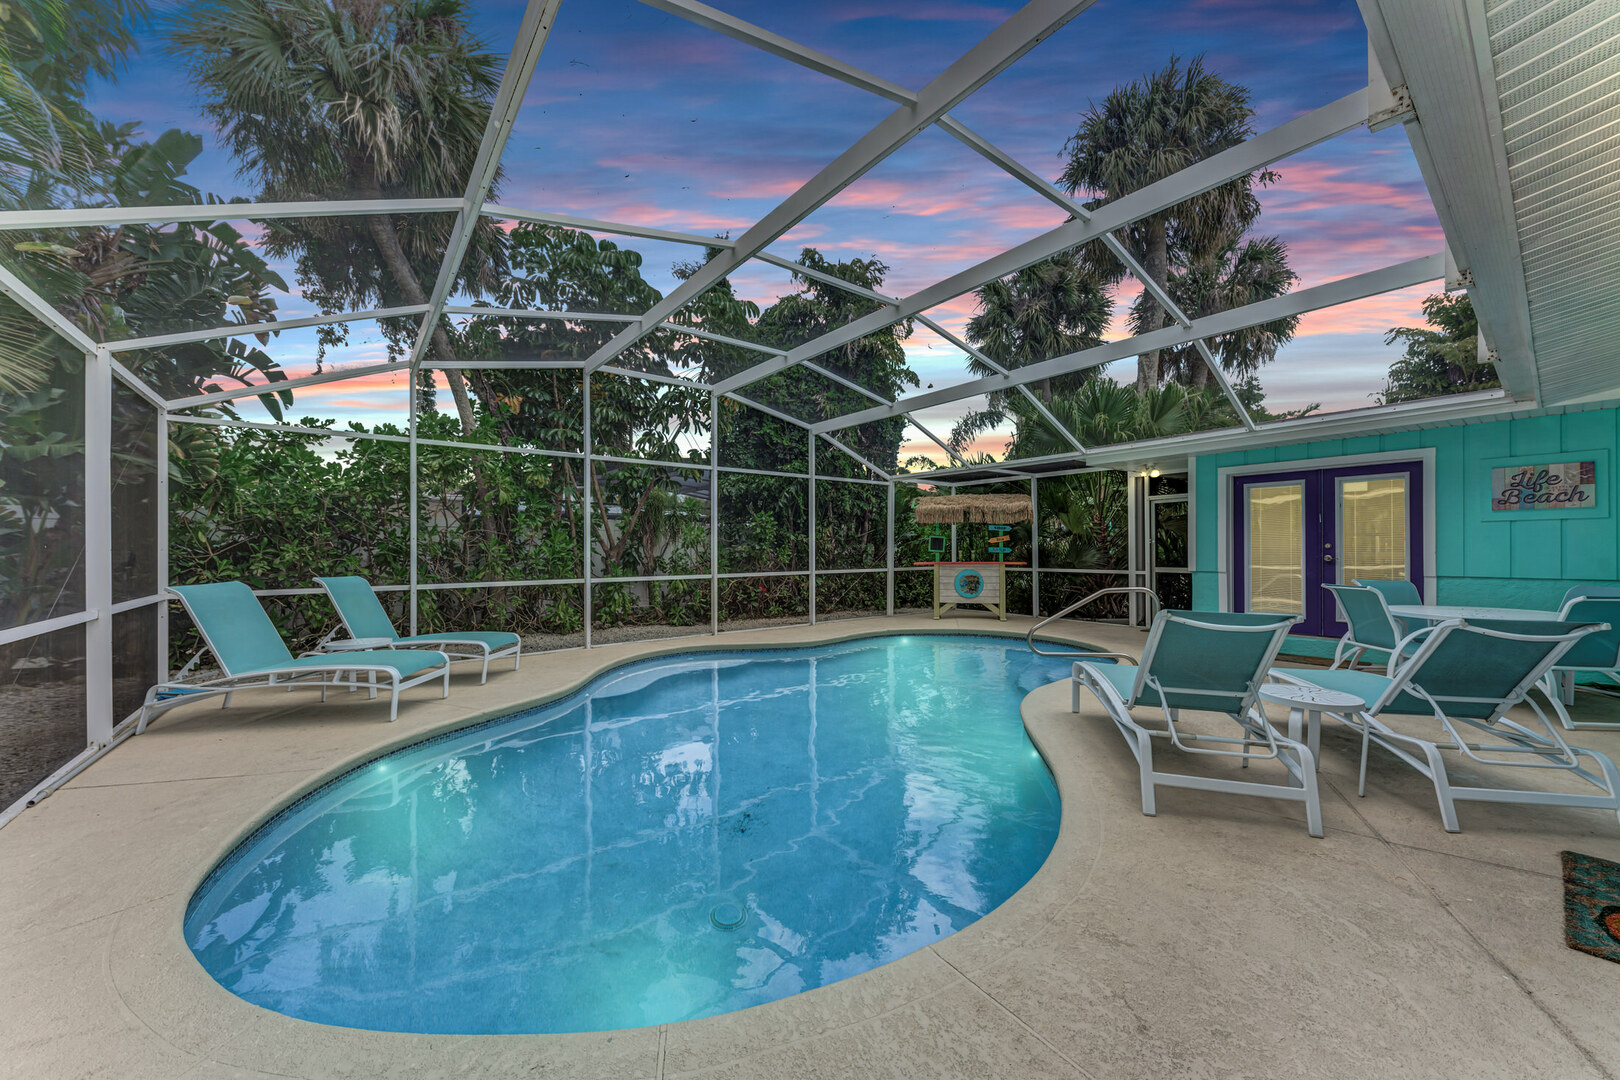 Barefoot Bungalow pool area at sunset